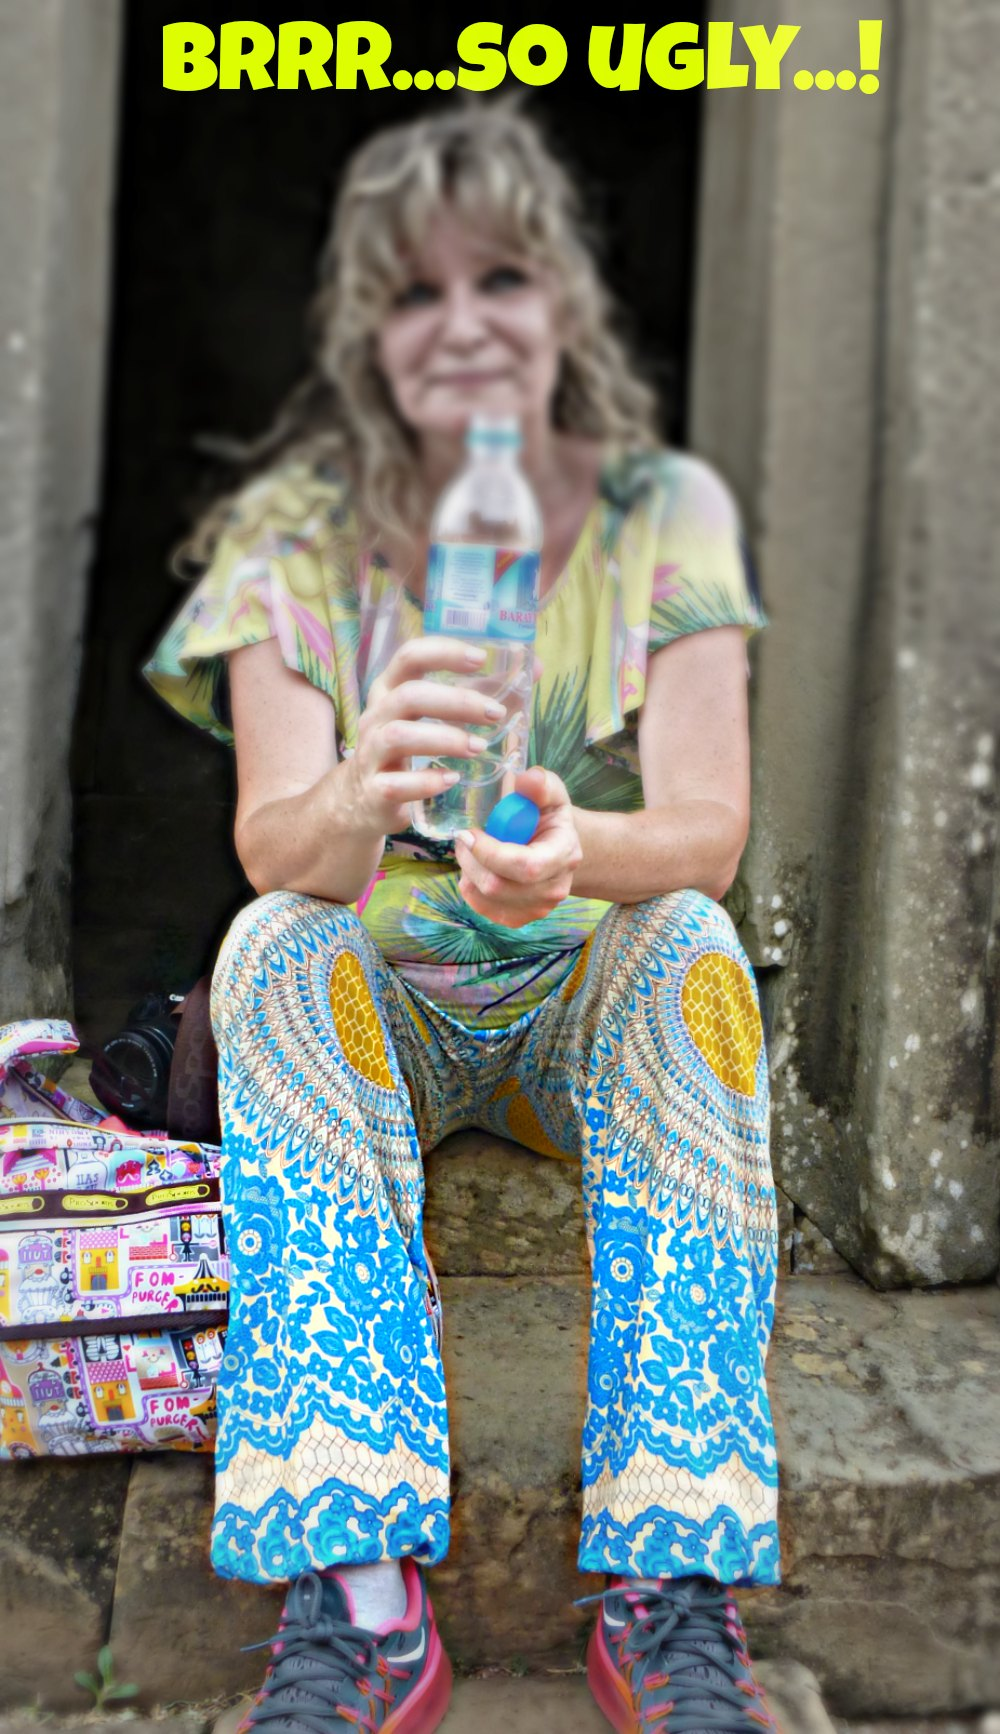 Blond woman in ugly pants |curlytraveller.com